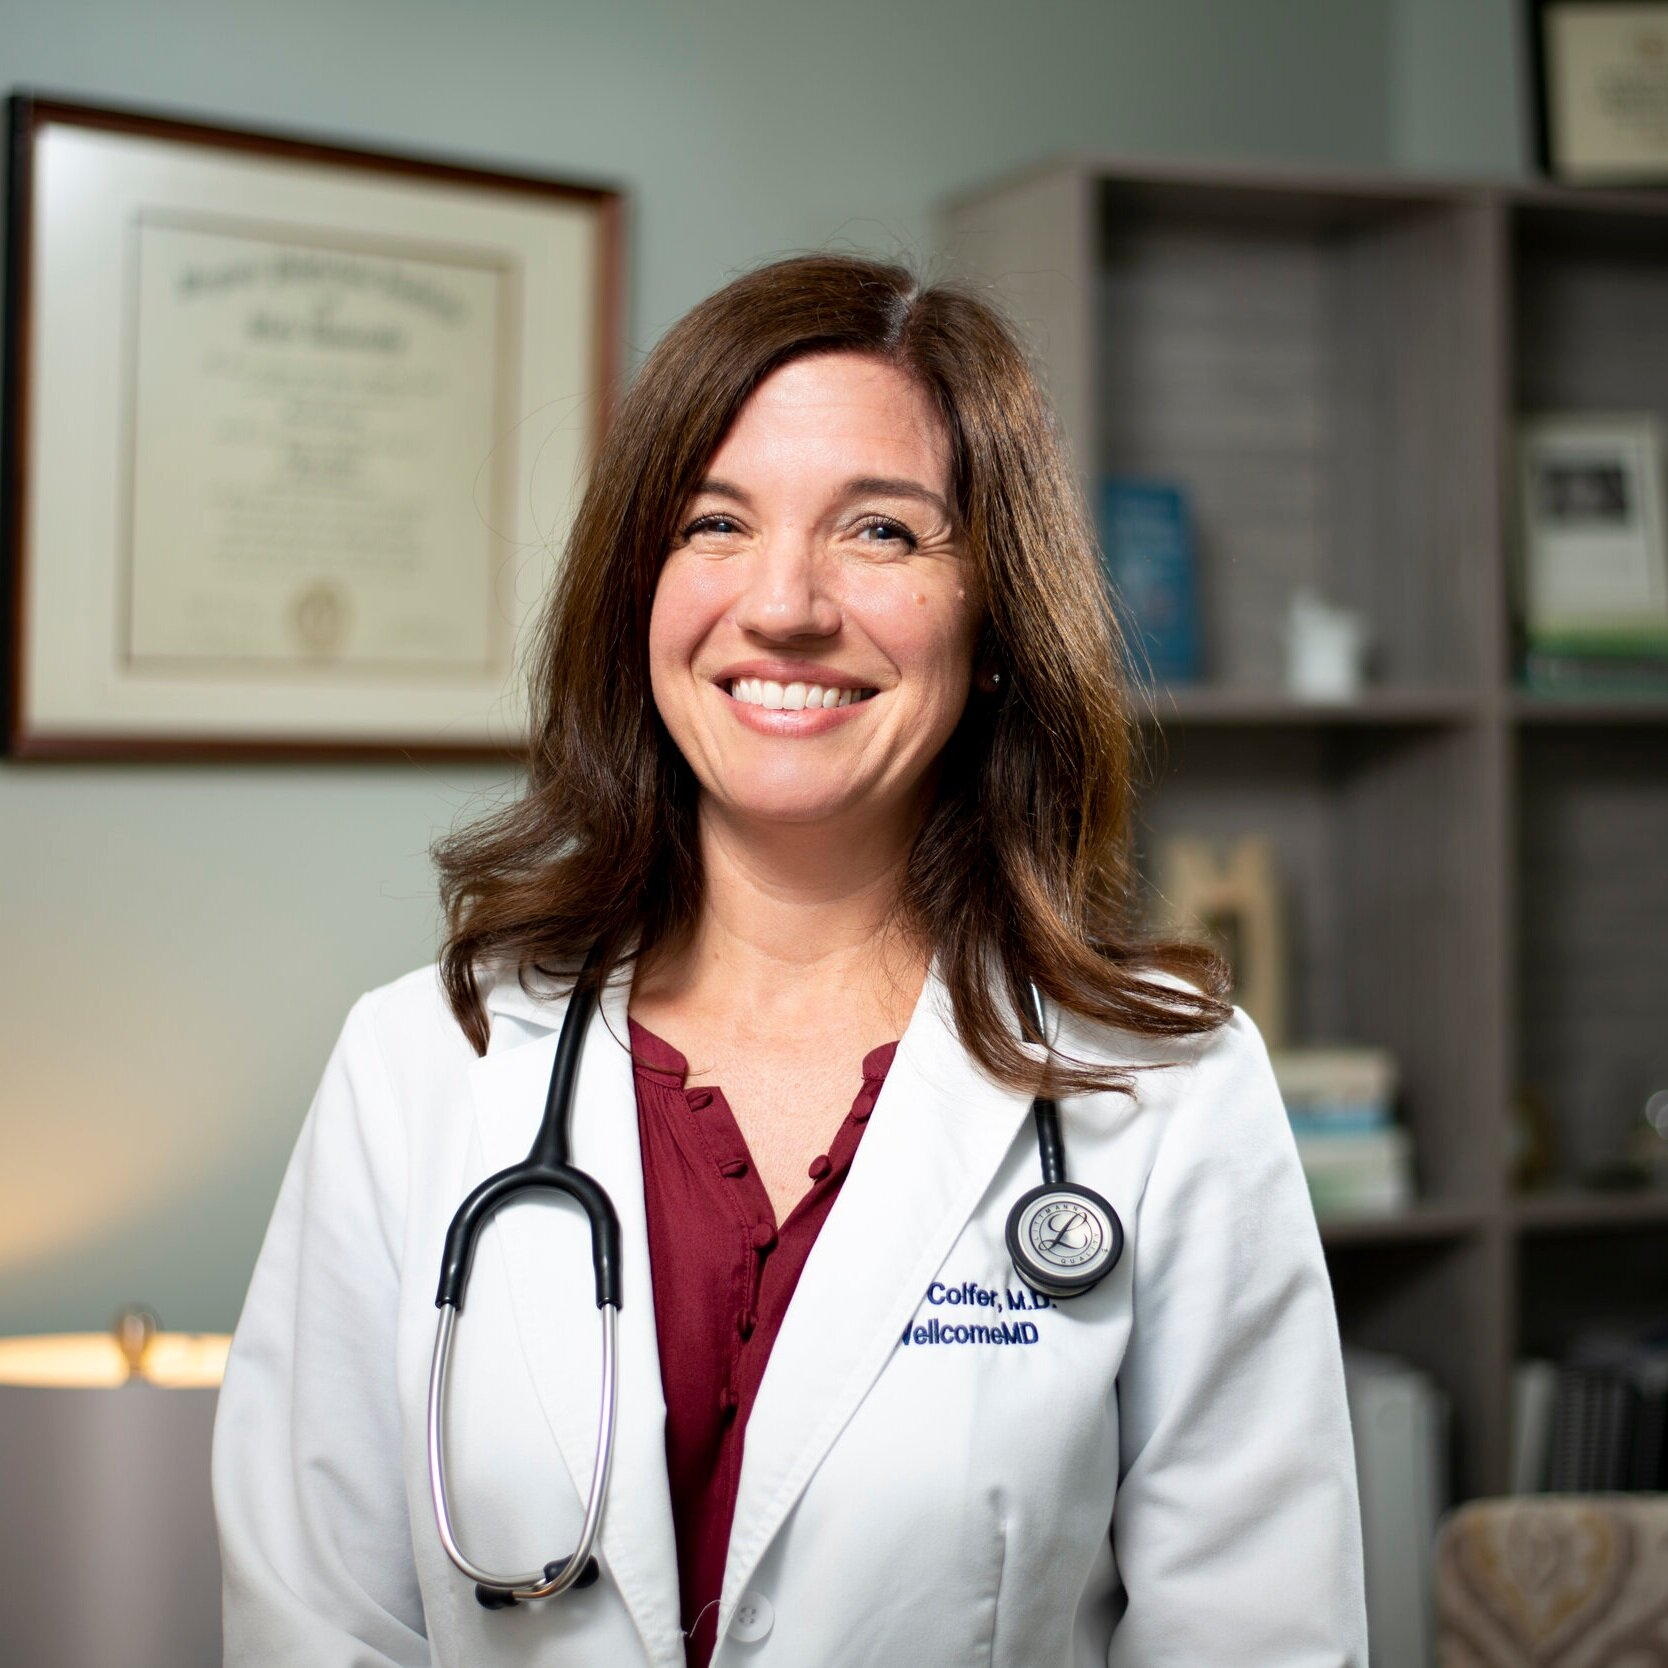 Dr. Mary Colfer, M.D.